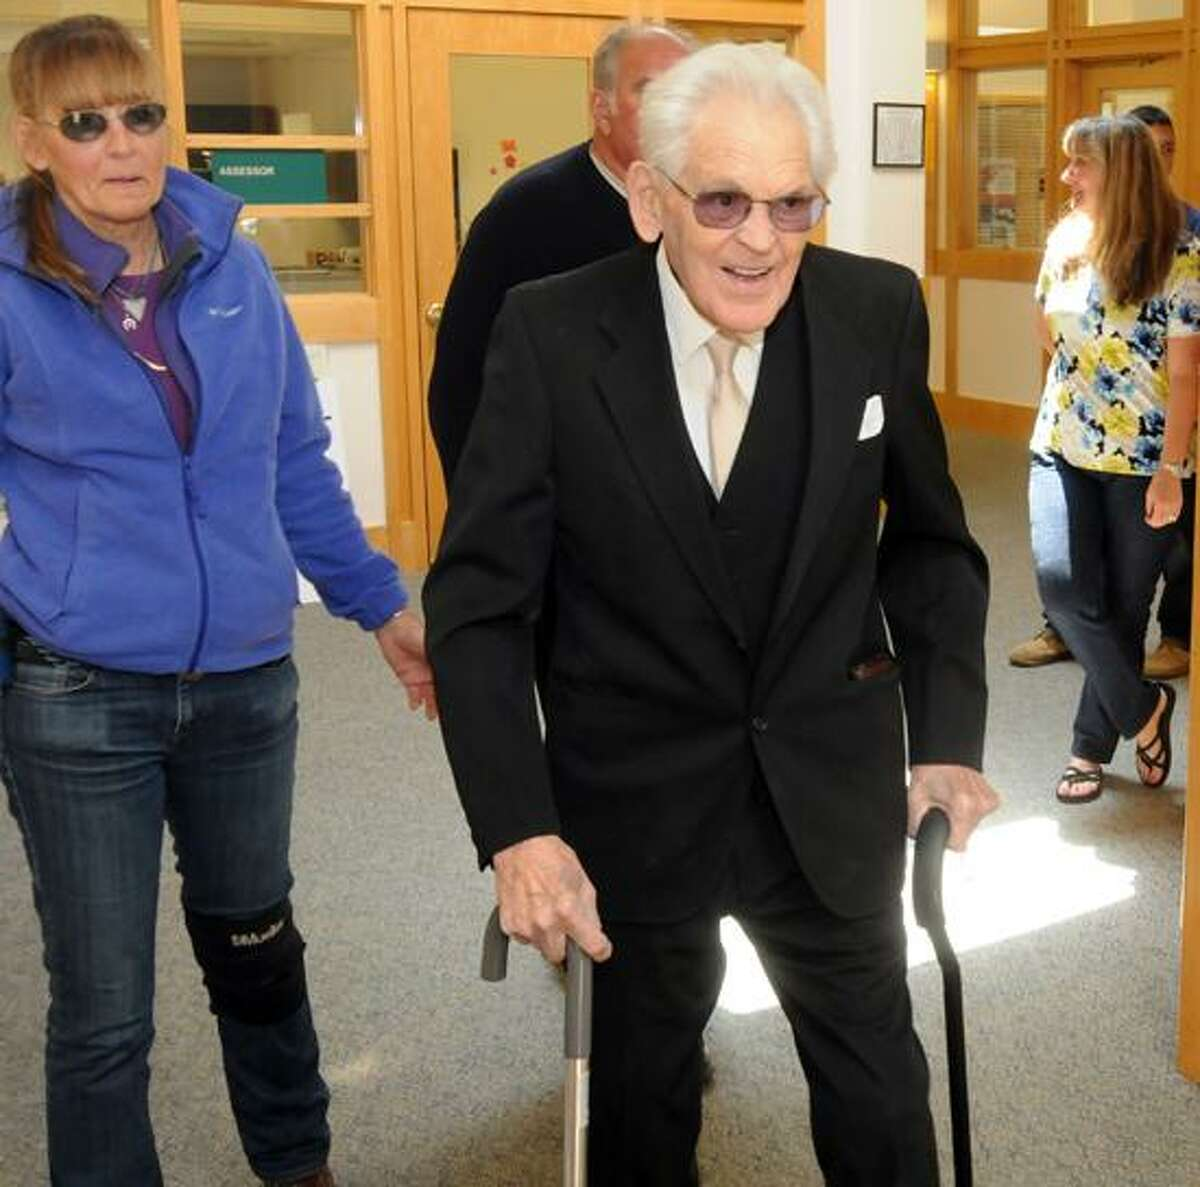 Madison Town Offices: Helen Sneider of Deep River, left, with her brother Clifford Sneider, Jr. mostly hidden, center, arrive with their father Clifford Sneider, Sr. of Madison, who was honored by Madison First Selectman Fillmore McPherson after Sneider turned 104 last month. Mara Lavitt/New Haven Register mlavitt@newhavenregister.com5/13/13